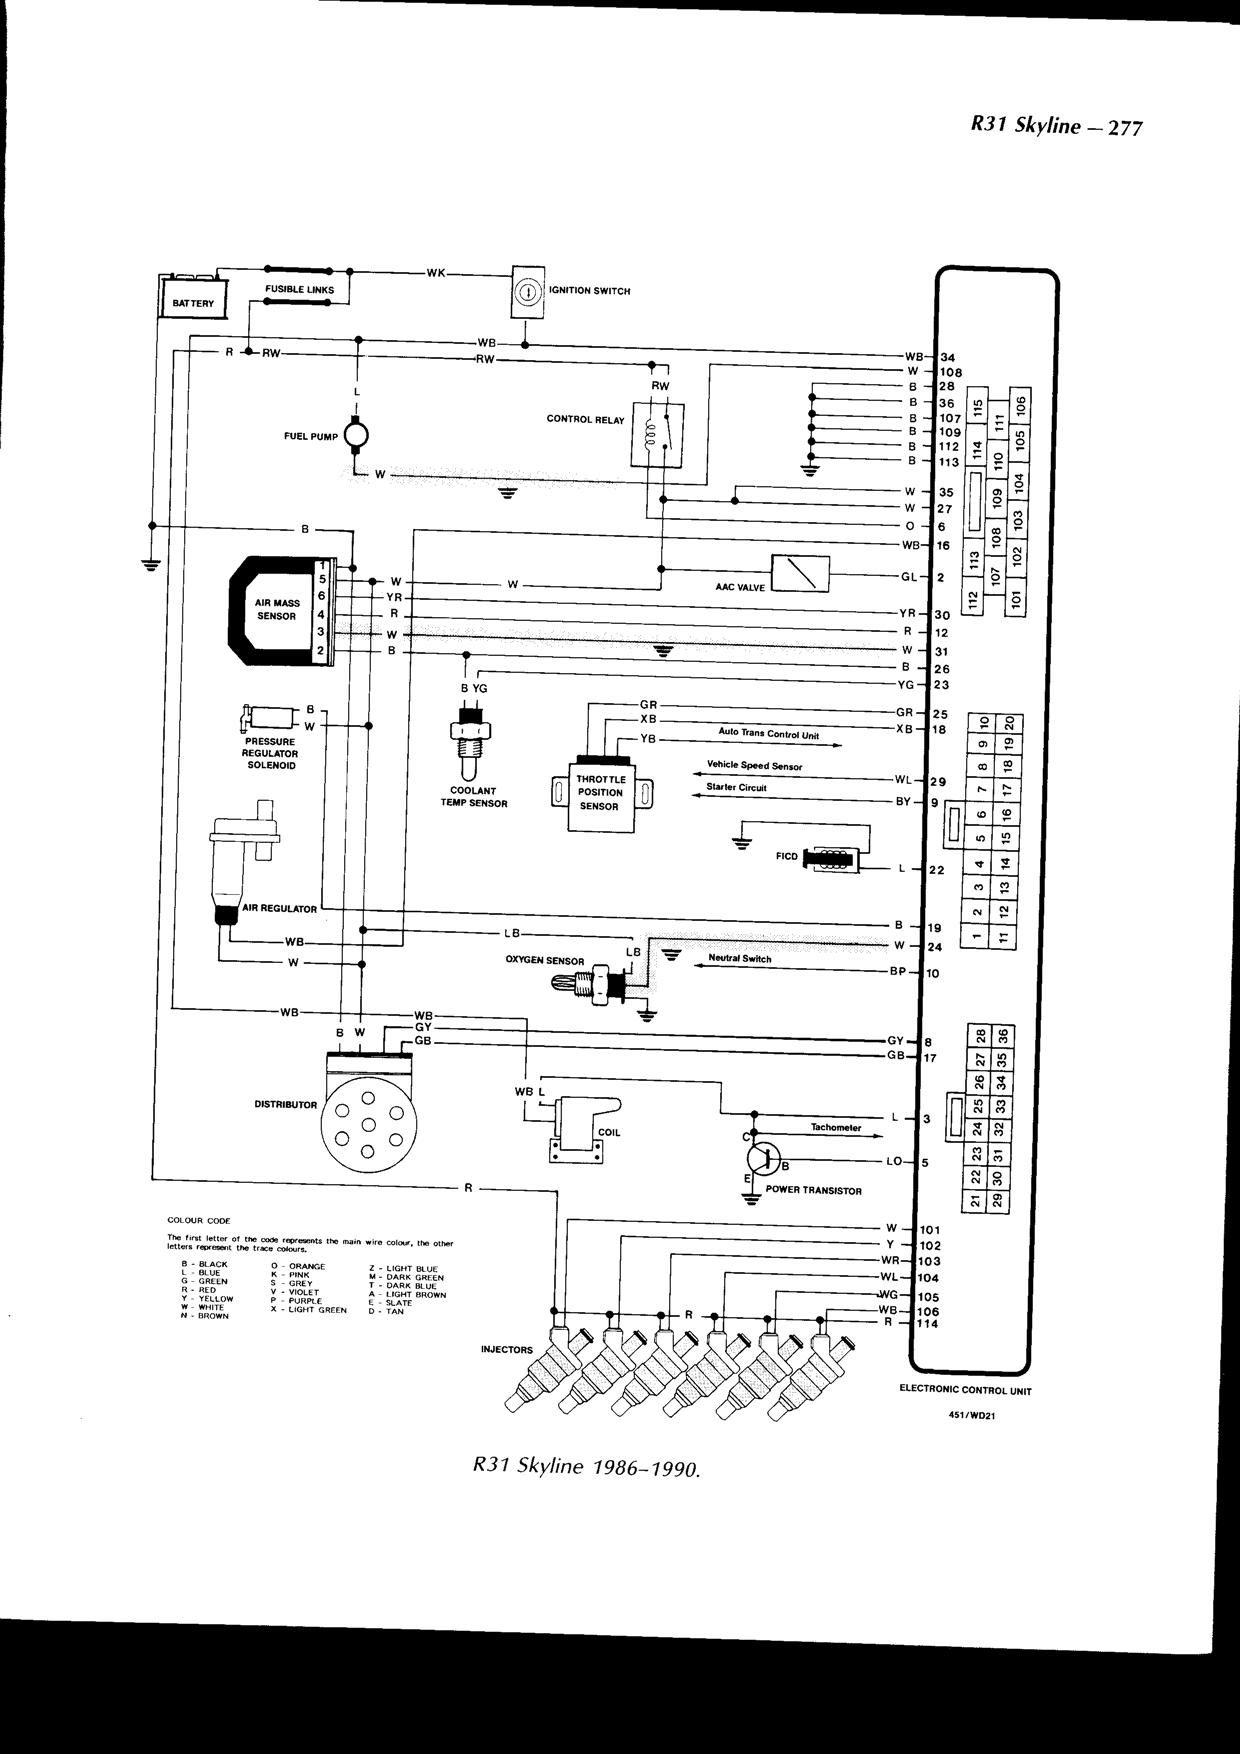 nissan 1400 electrical wiring diagram nissan nissan electricalnissan 1400 electrical wiring diagram [ 1240 x 1754 Pixel ]